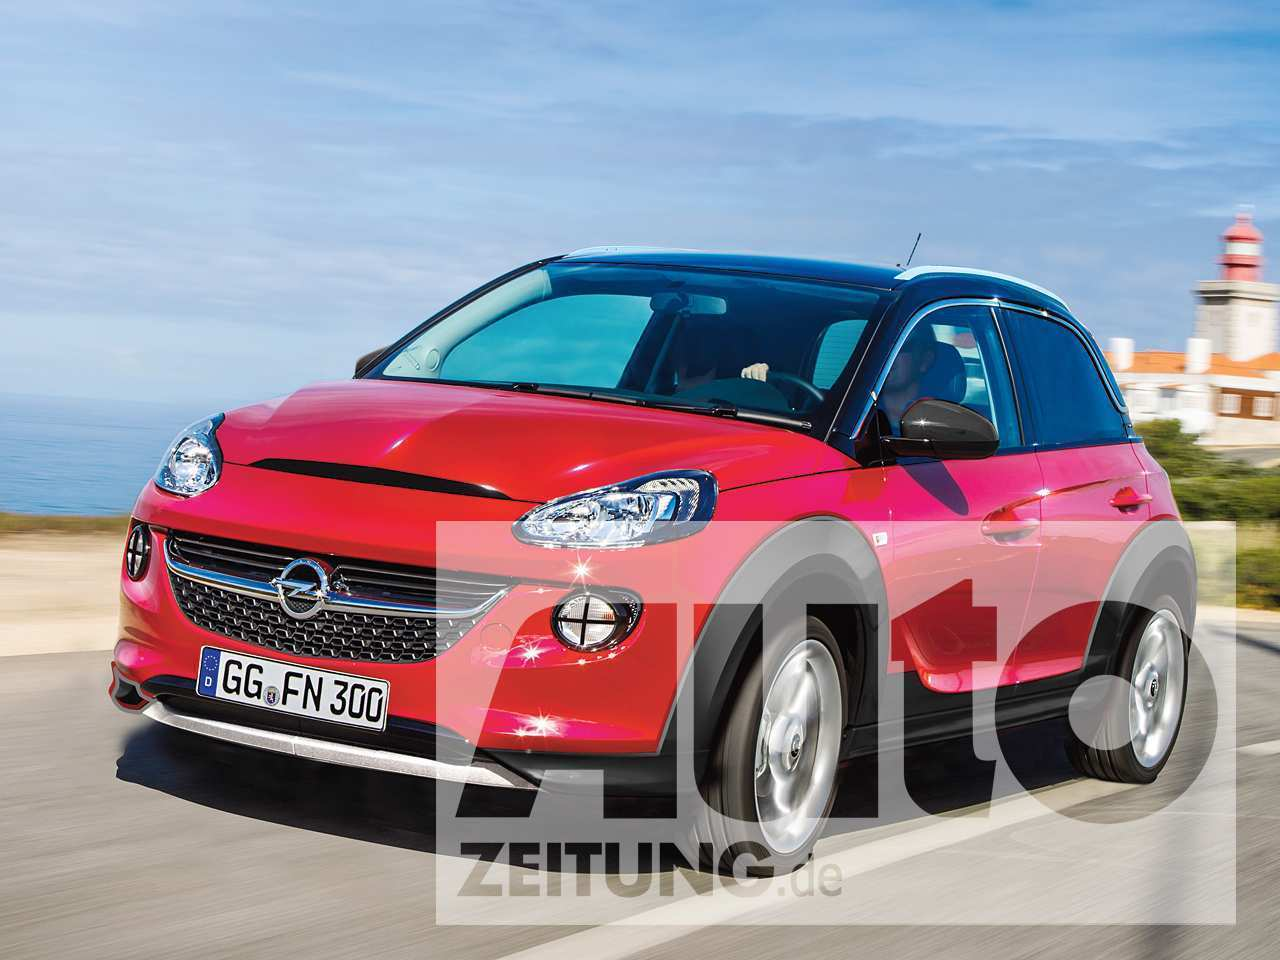 81 The Best Opel Neue Modelle 2020 Release